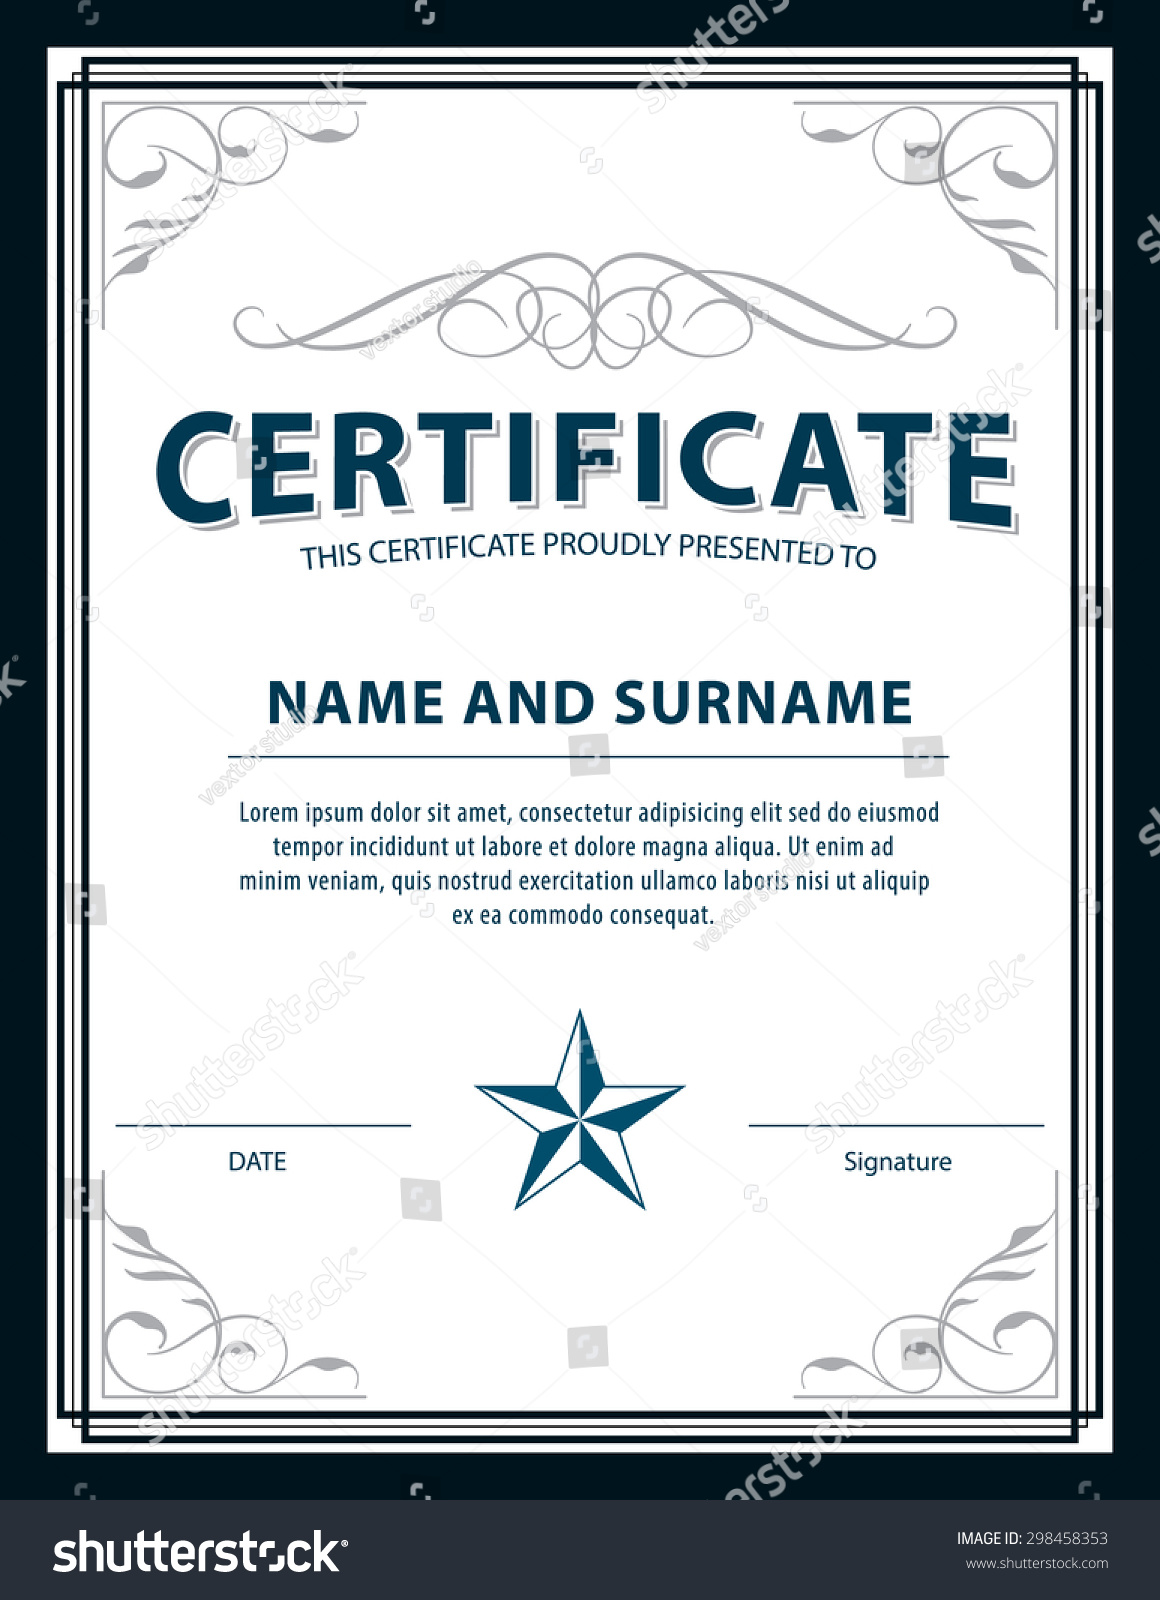 A5 size certificate template gallery certificate design for The request contains no certificate template information